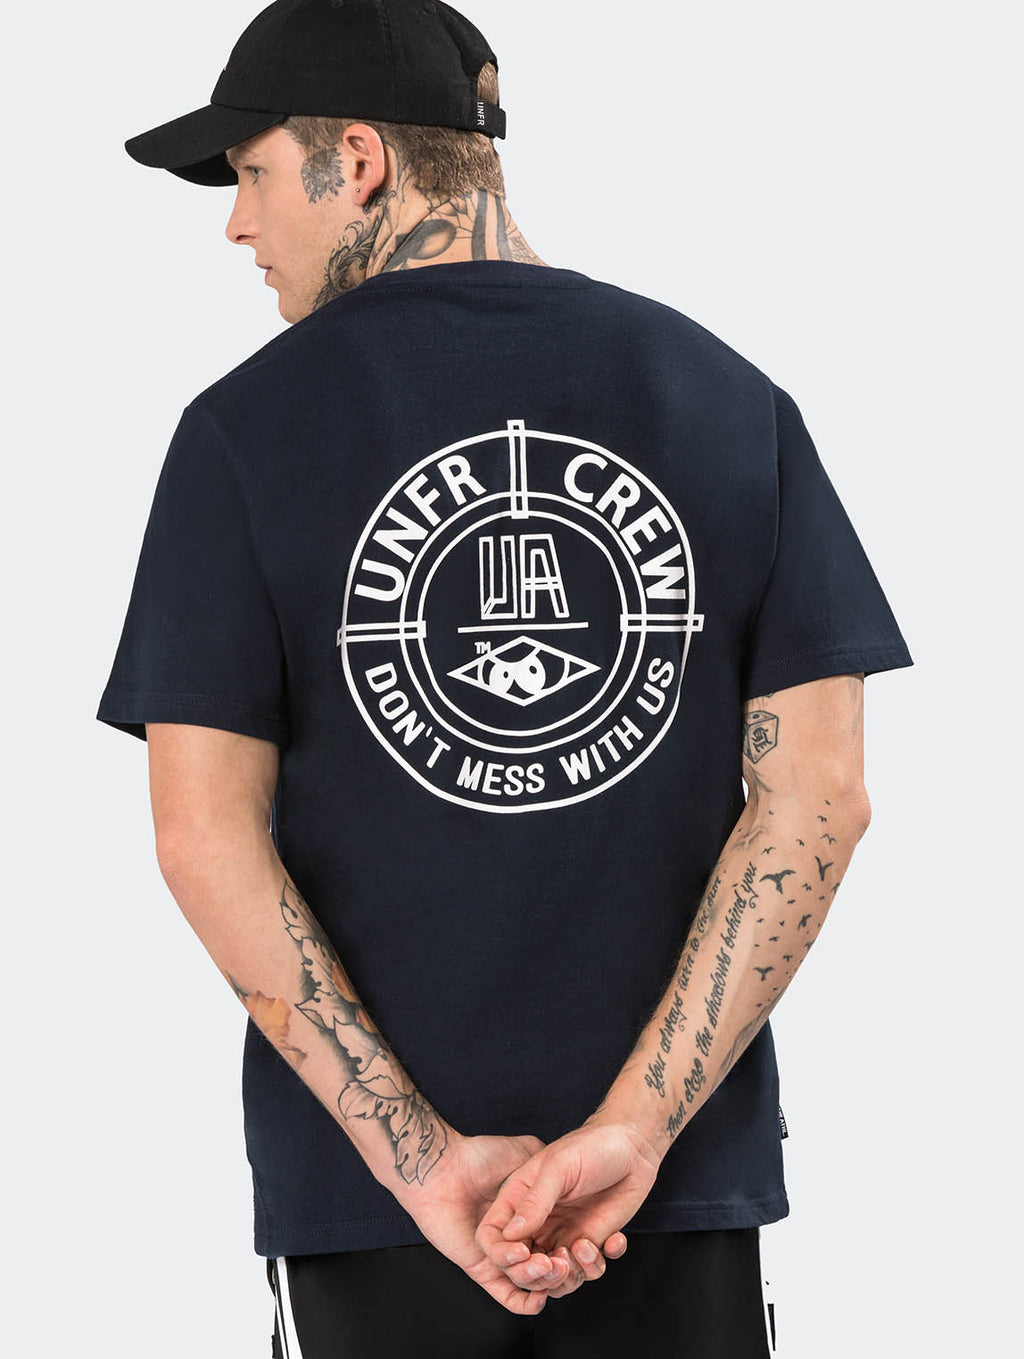 DMWU BP T-SHIRT NAVY - EVERY*